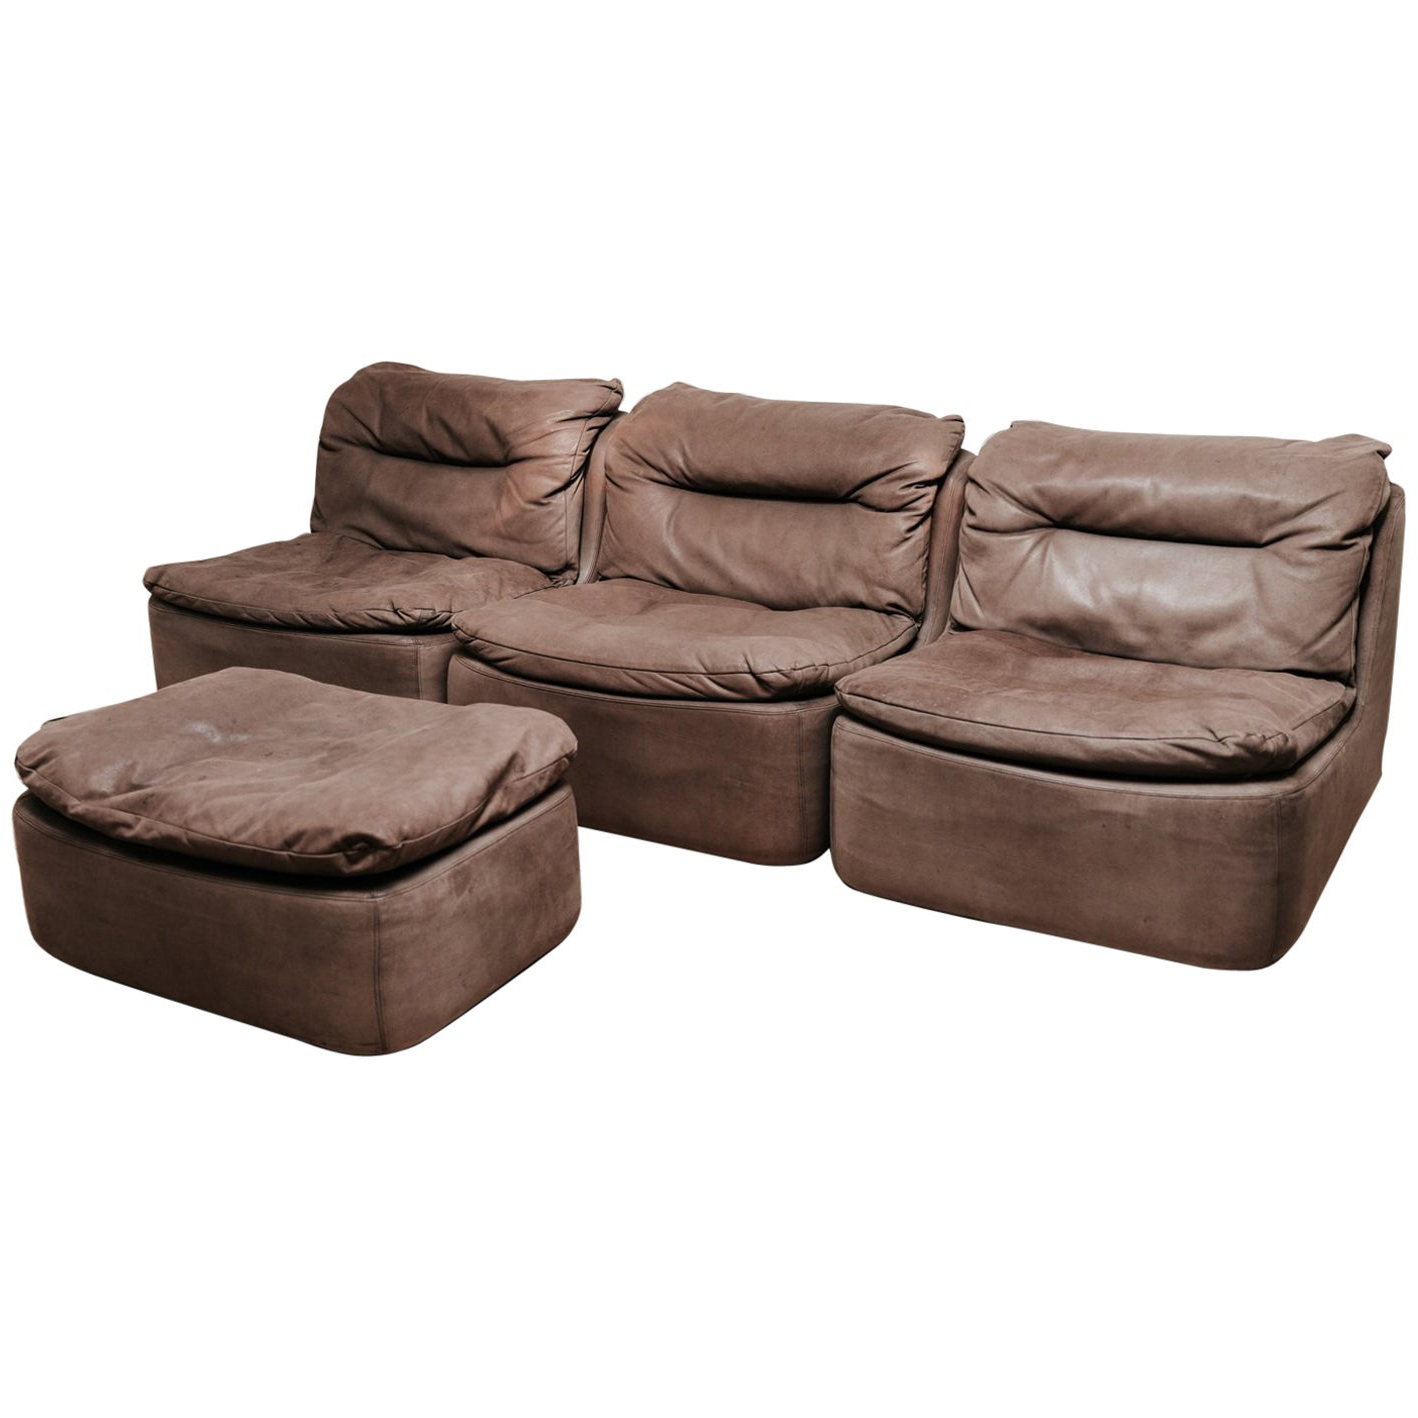 Most Popular 20th Century Leather Modular/sectional Sofa At 1stdibs With Regard To Brecht Patio Sectionals With Cushions (View 20 of 25)